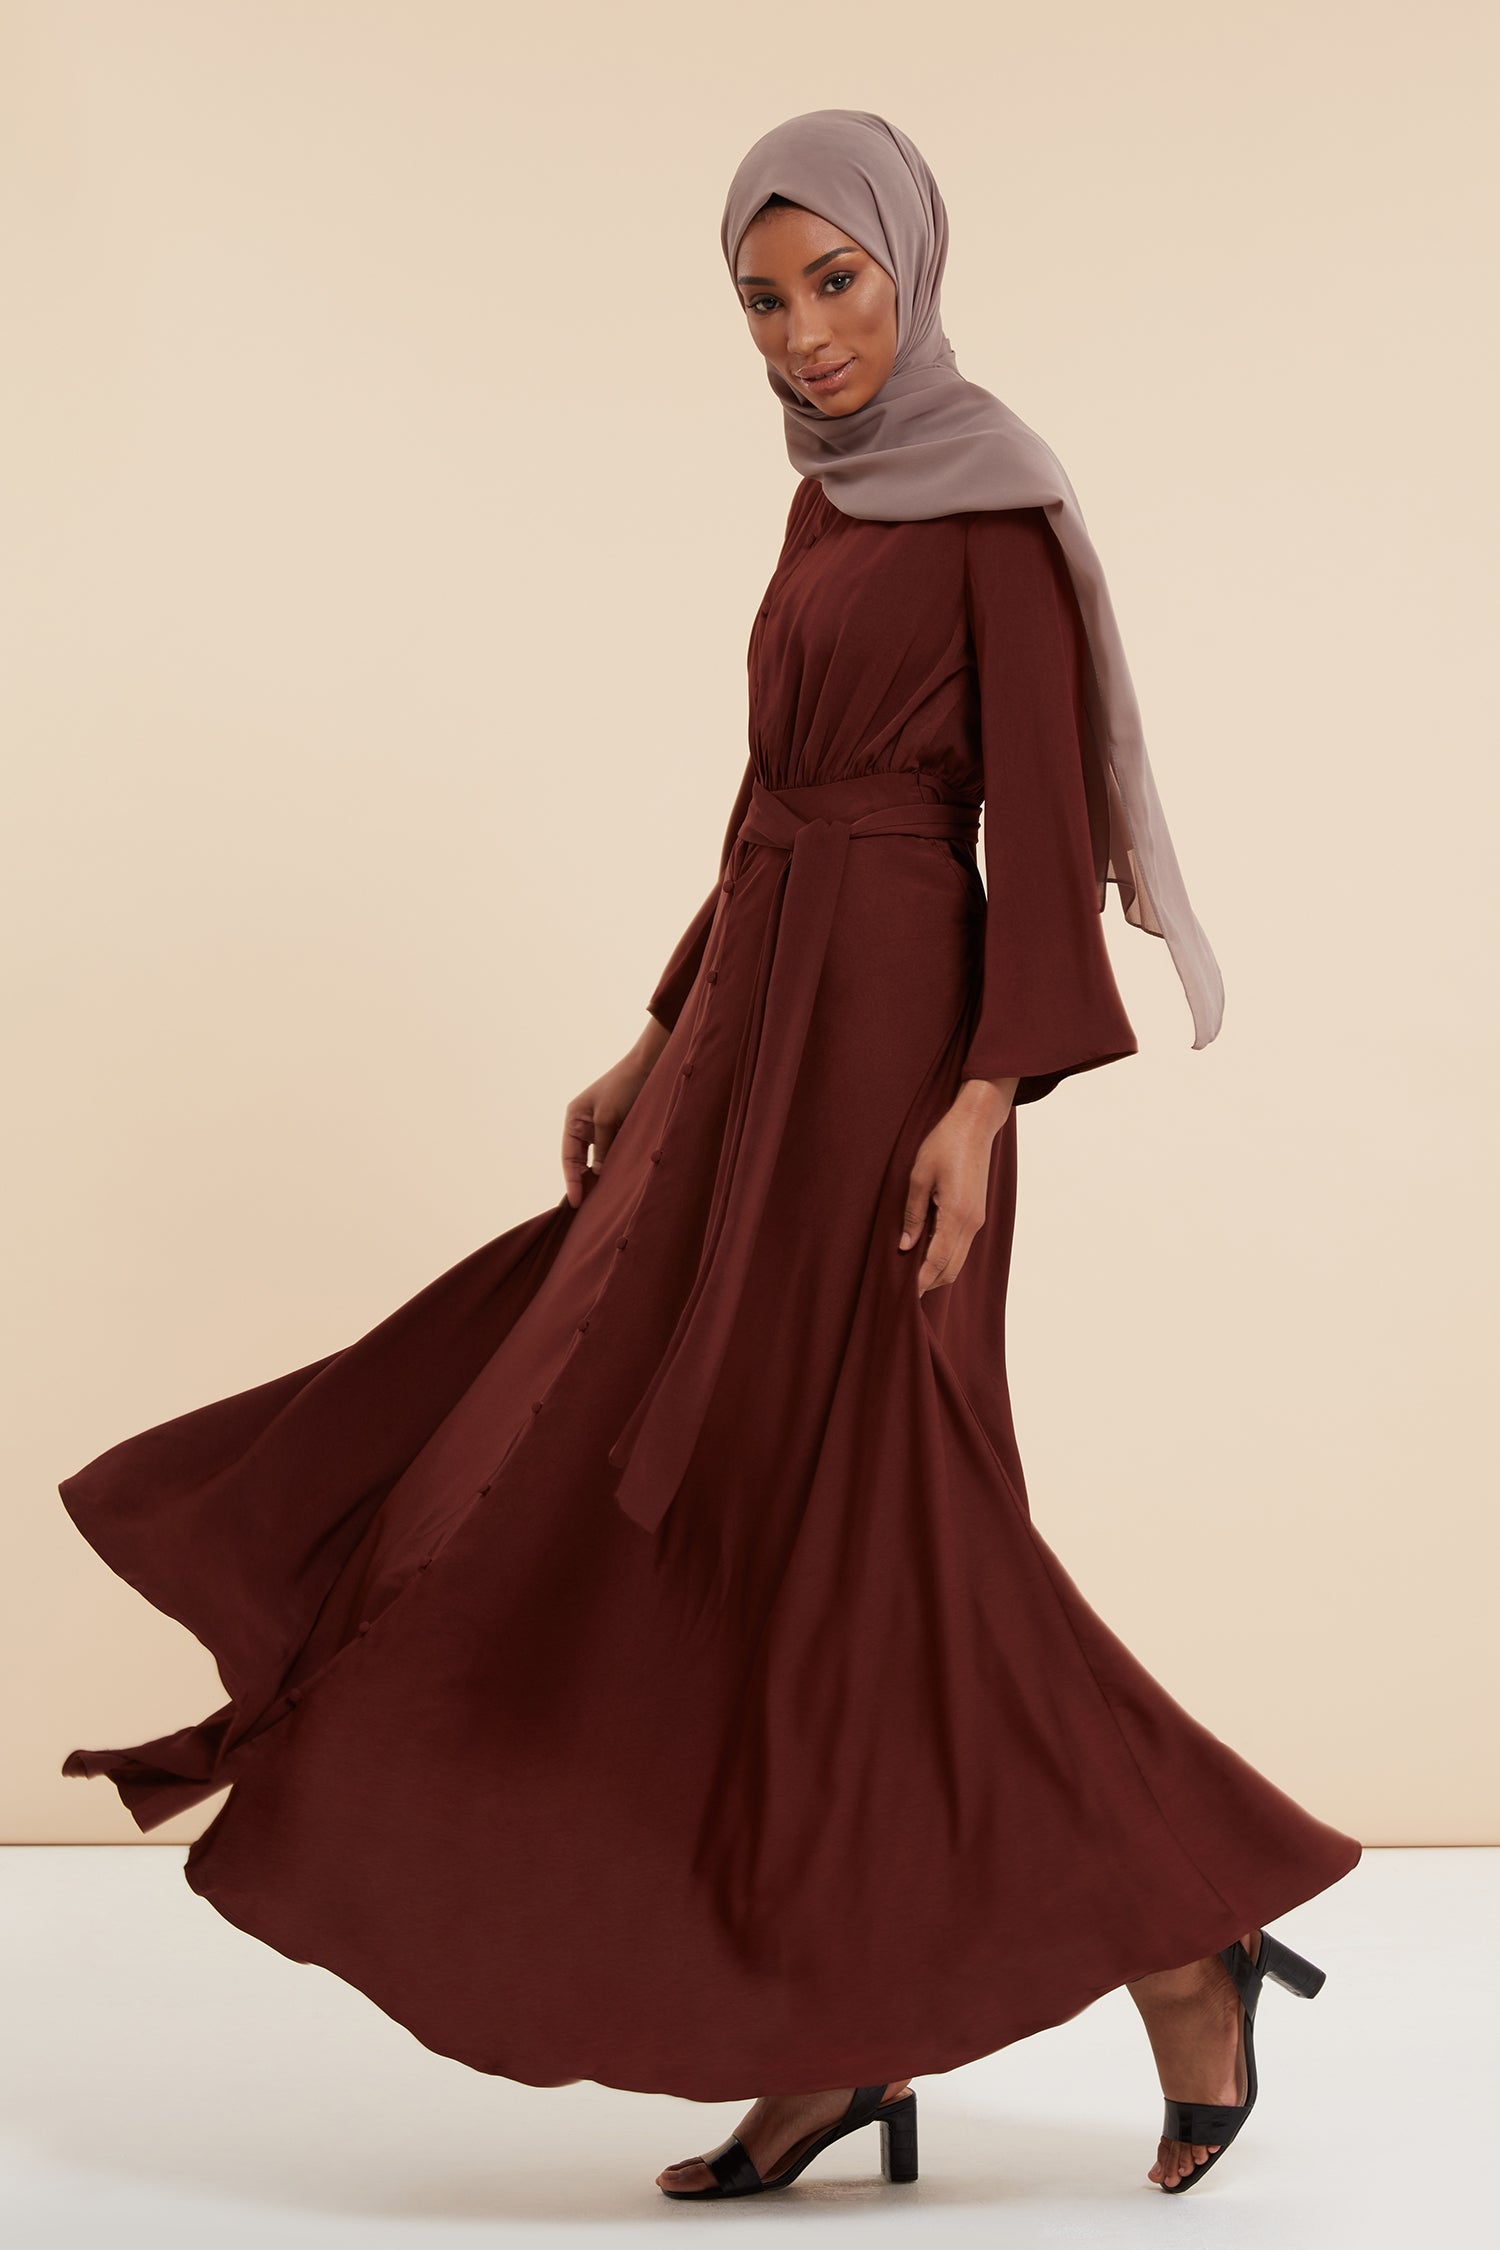 luxury abayas, kimono abayas, open abaya, flared abaya, loose abaya, tailored abaya